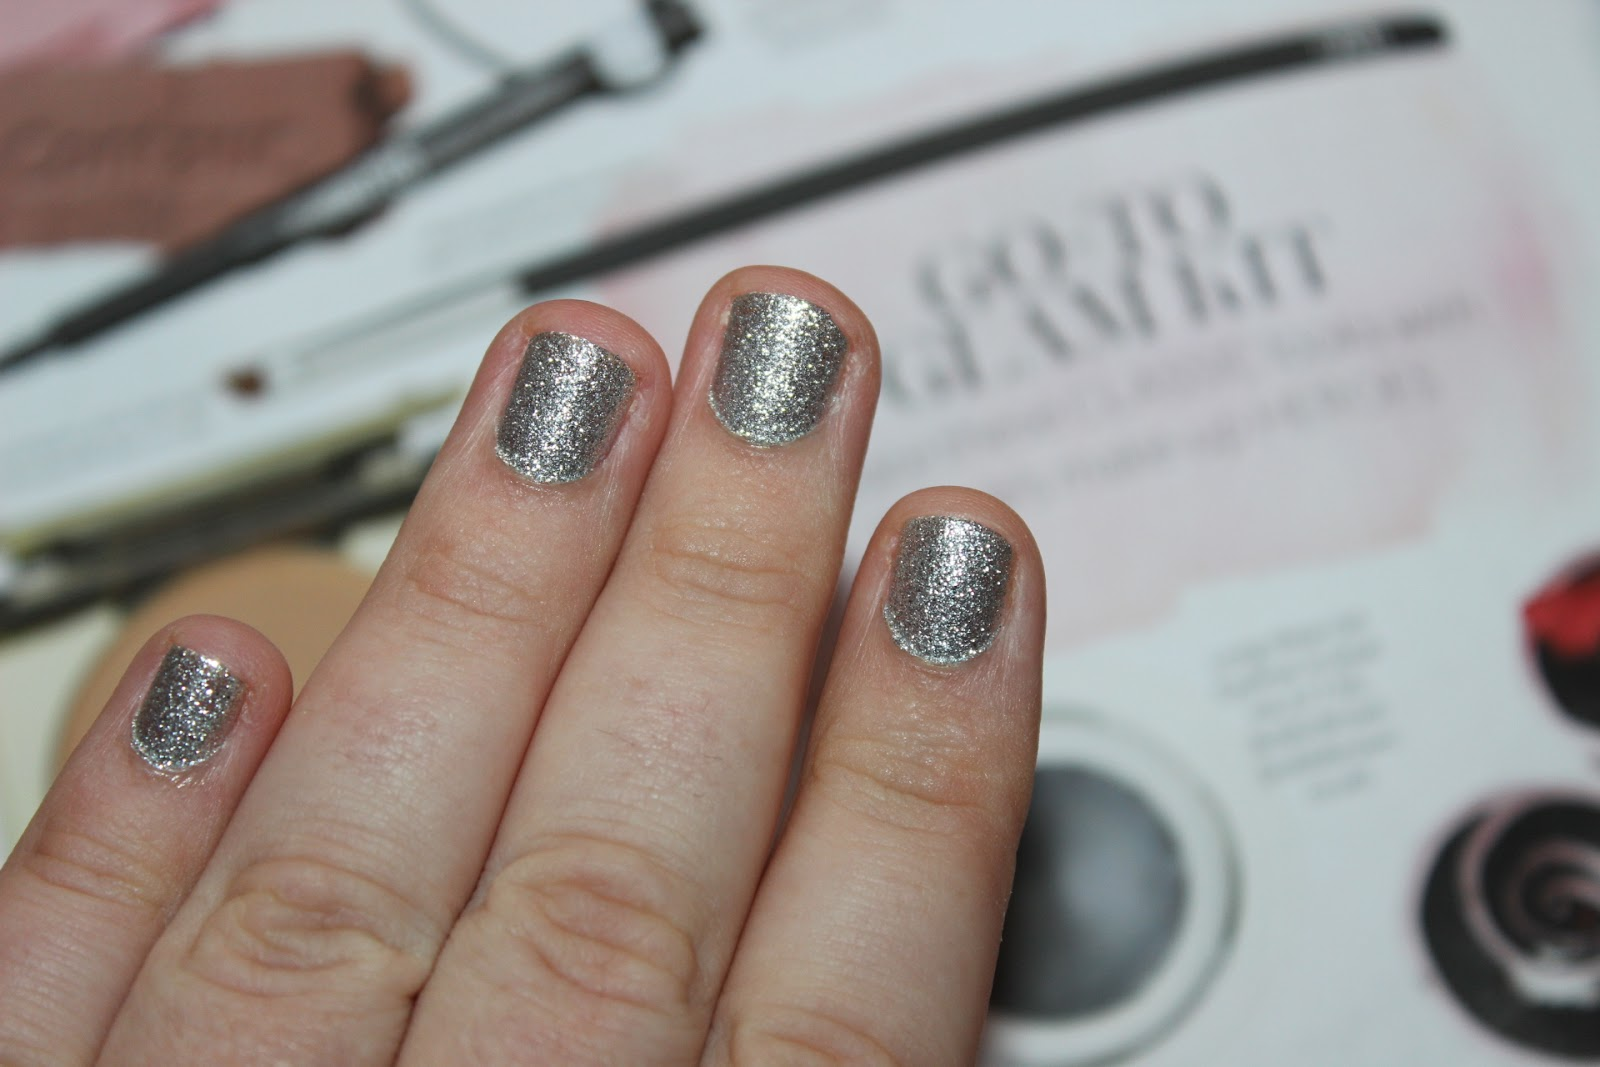 a silver full on glitter polish